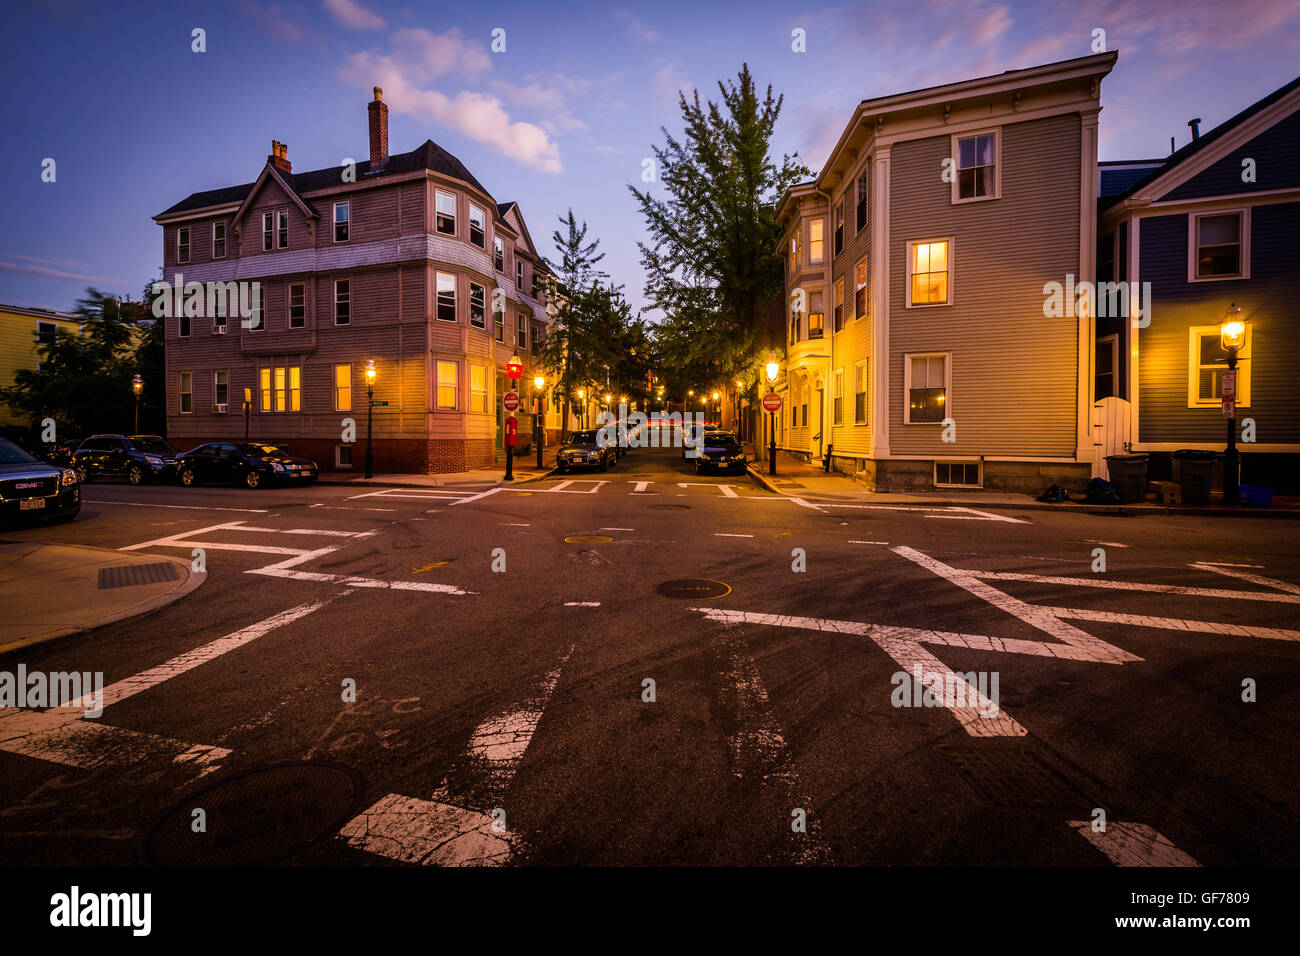 Intersection in Bunker Hill, Charlestown, Boston, Massachusetts. - Stock Image